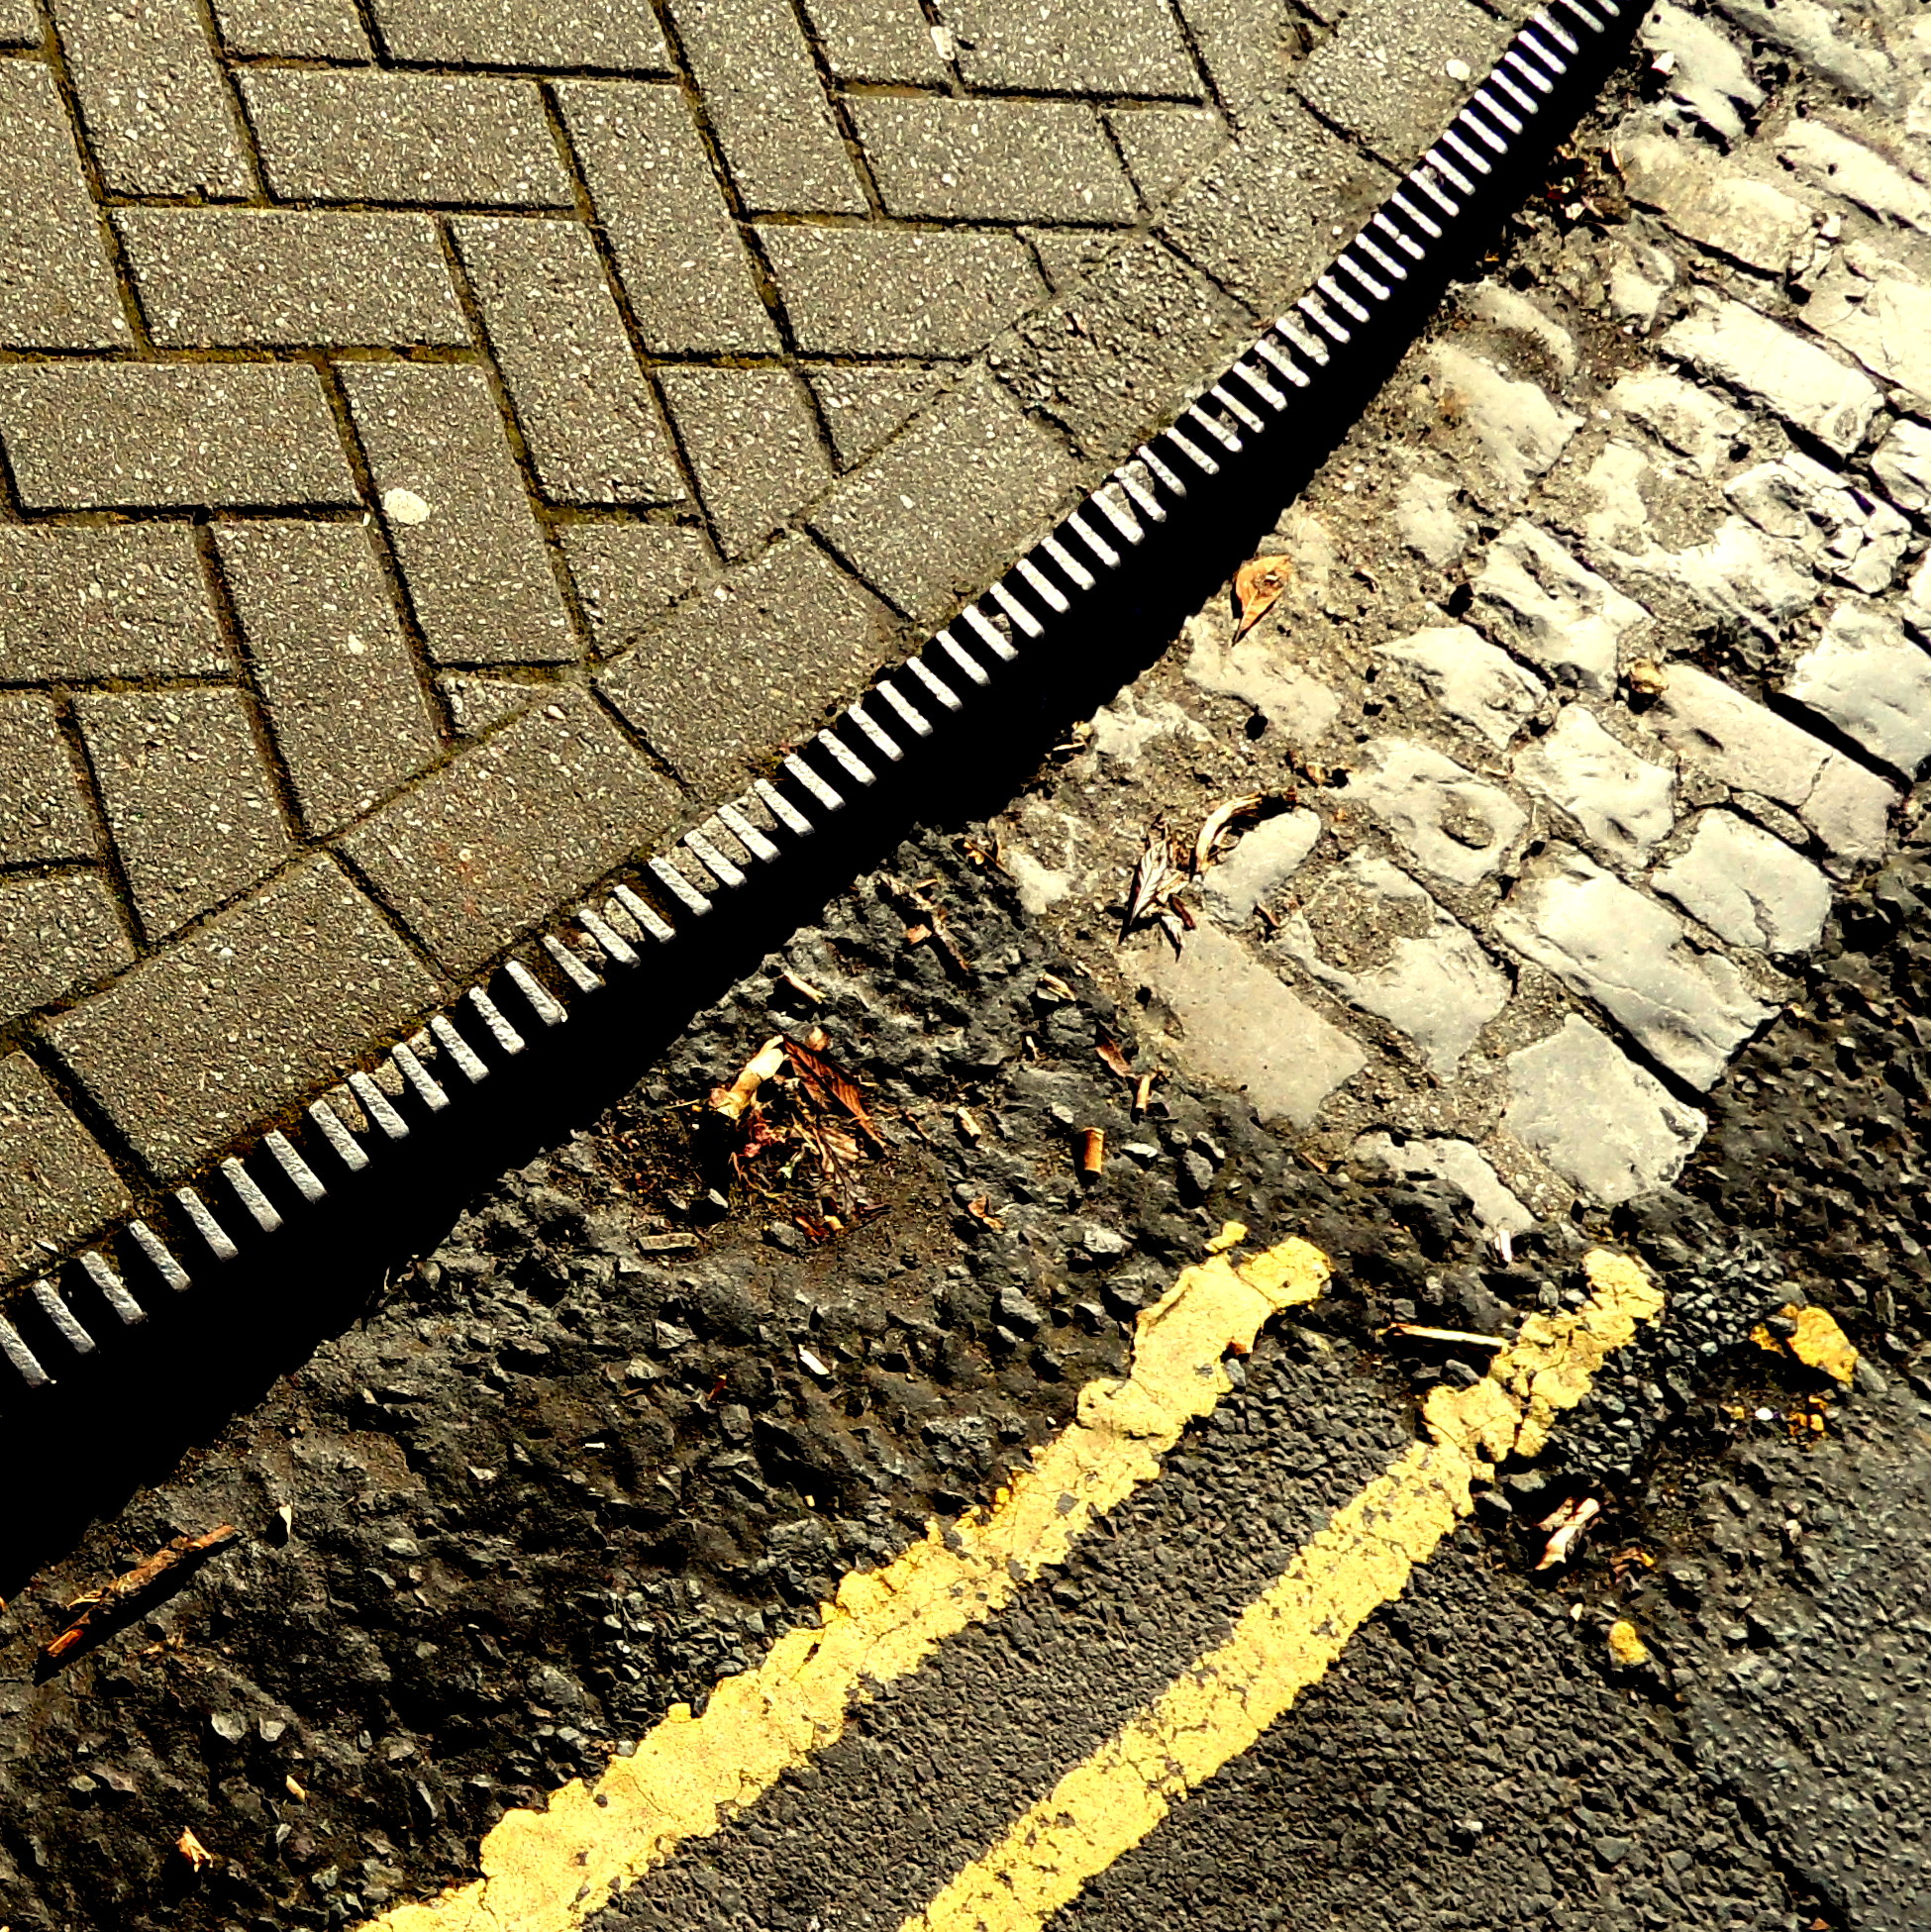 Iron kerbing and cobbles - Bristol.jpg